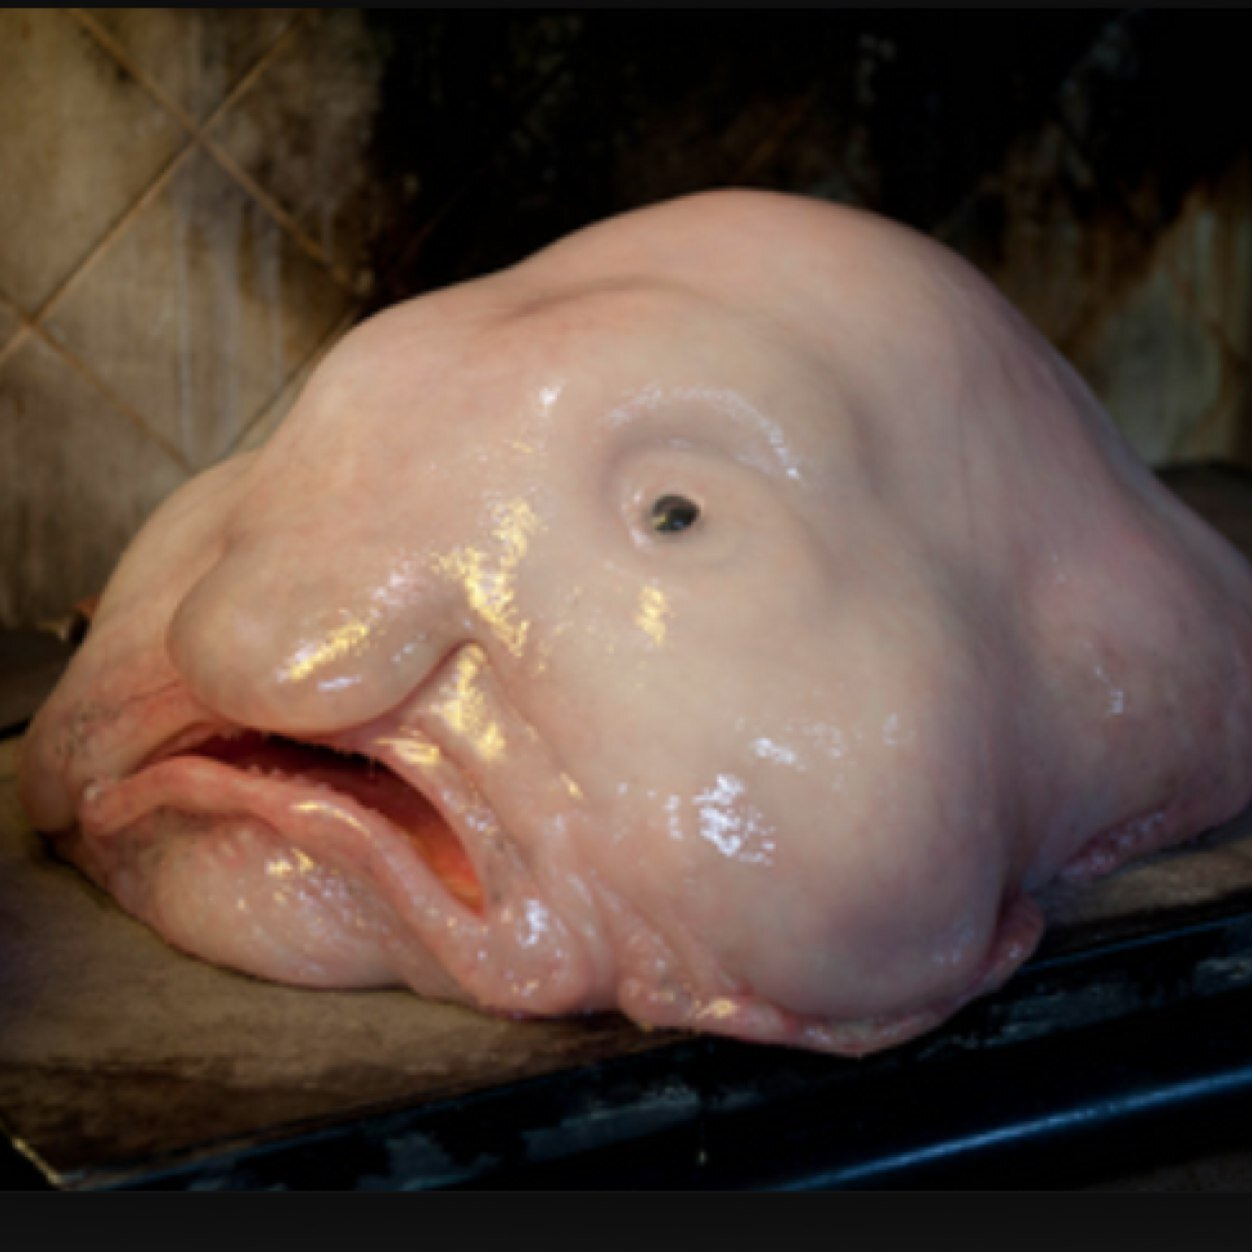 Blob The Ugliest Animal in the World Joy Sorman Olivier Tallec Sarah Klinger on Amazoncom FREE shipping on qualifying offers Blob the fish is excited Hes